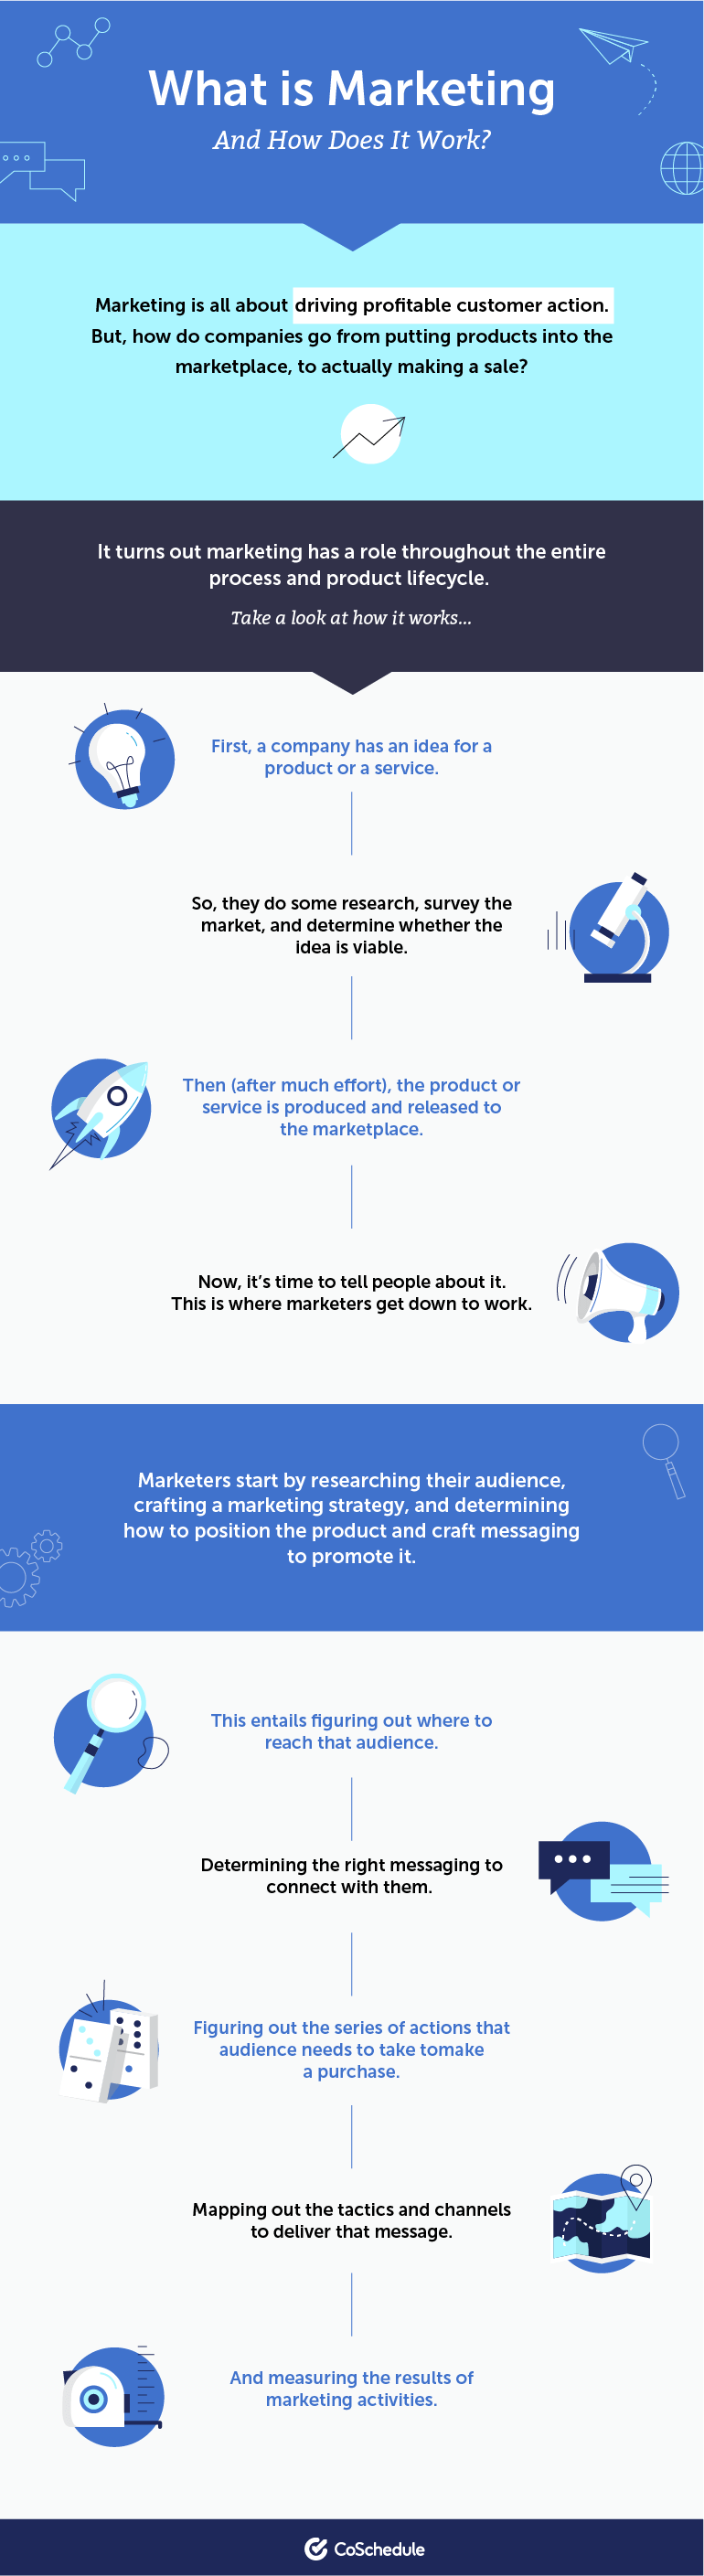 What is Marketing (And How Does It Work)